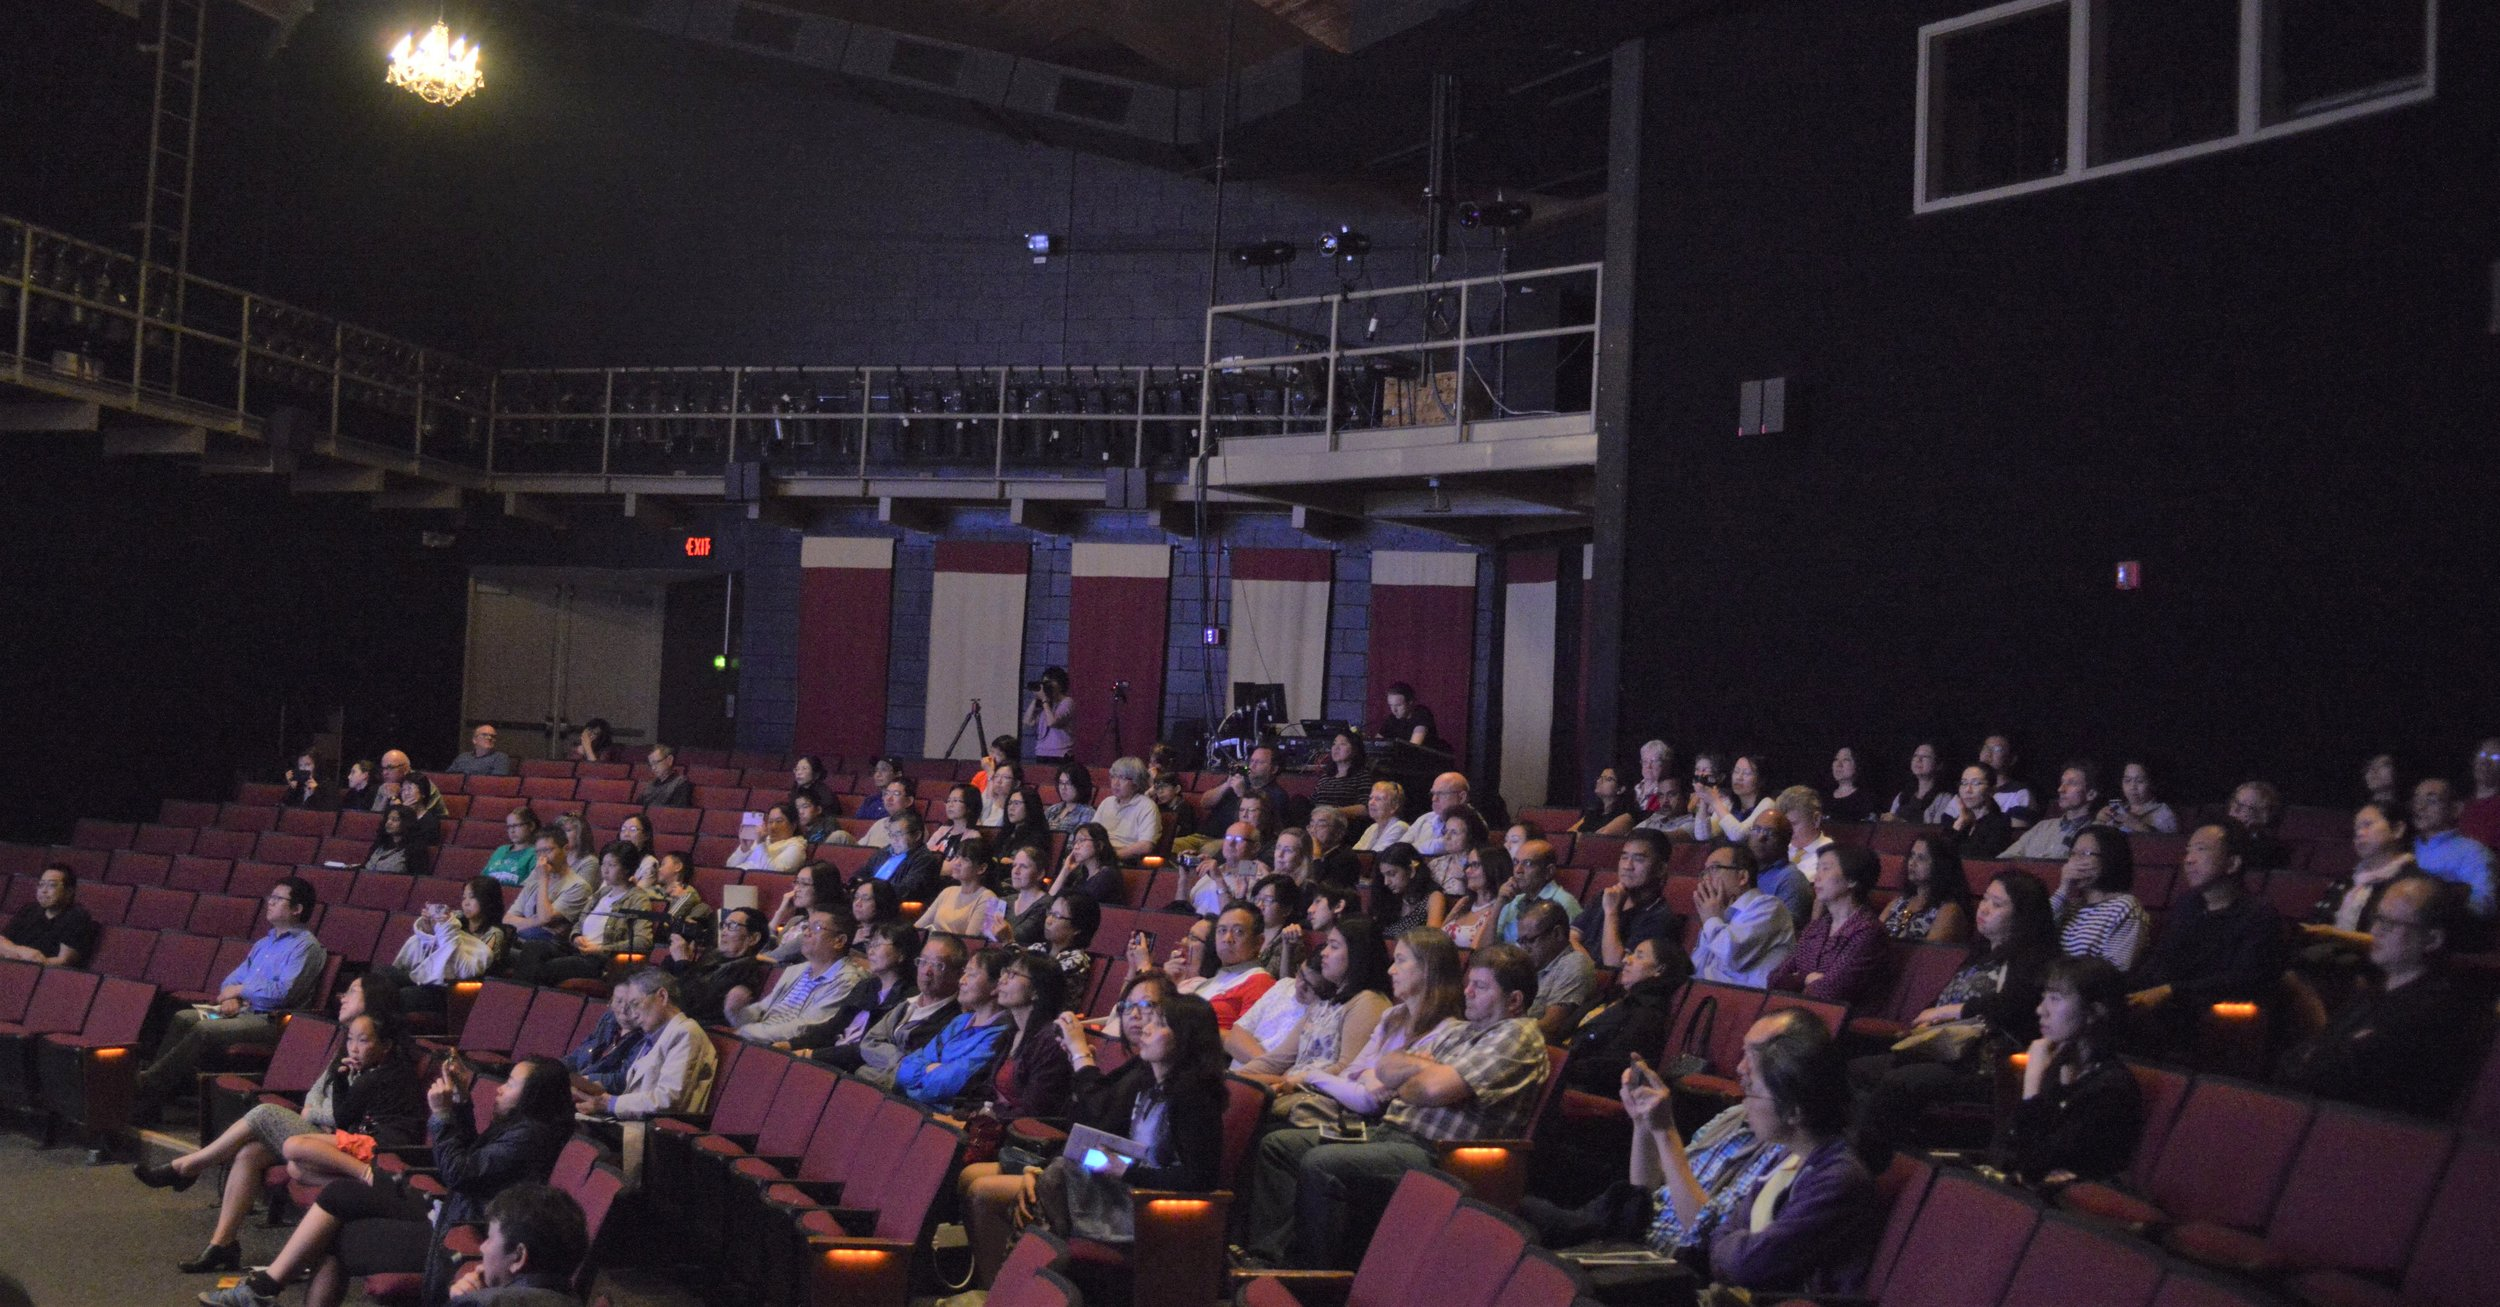 Audience looking on at the performers